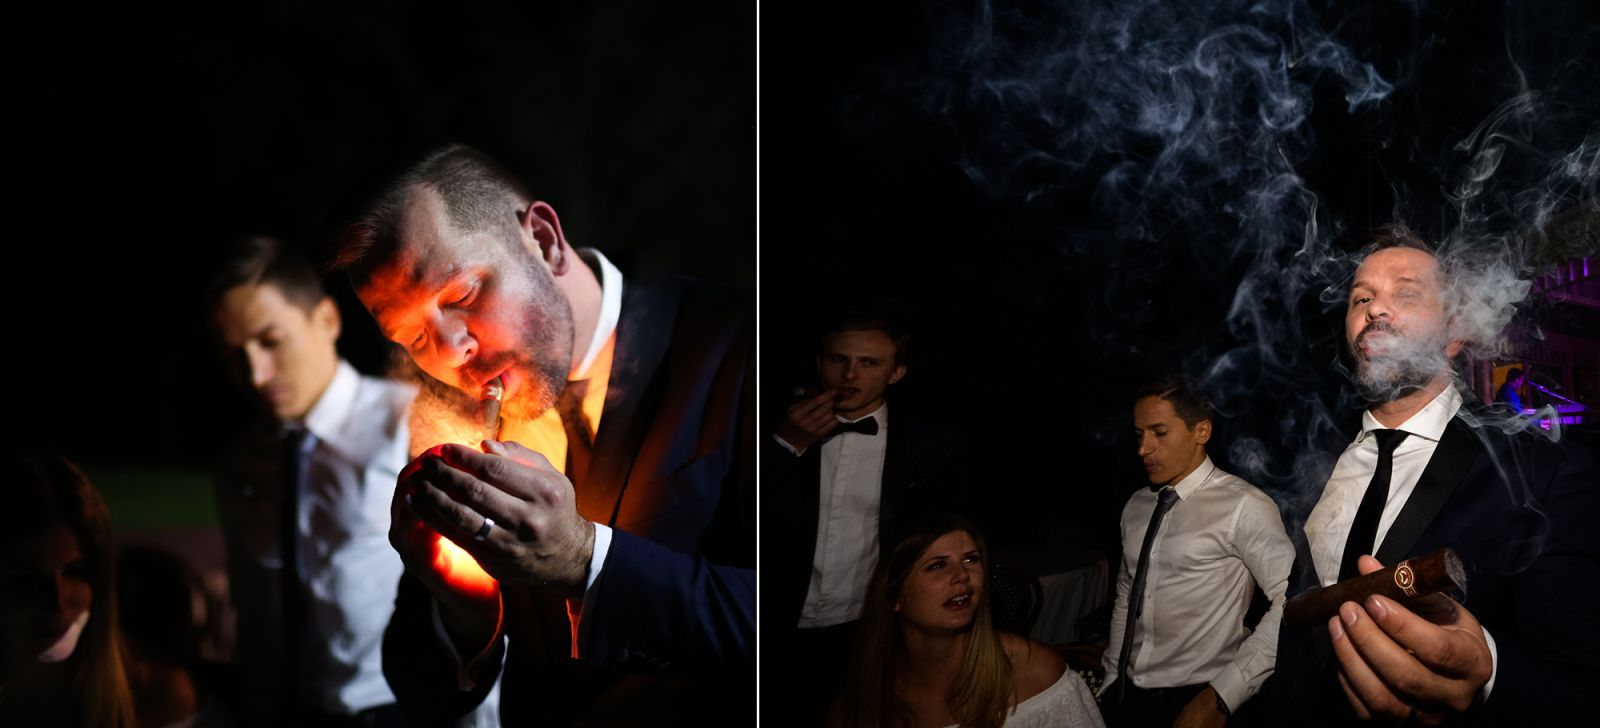 20_groom-smokes-cigar-at-wedding-reception-captured-by-hunter-valley-wedding-photographer